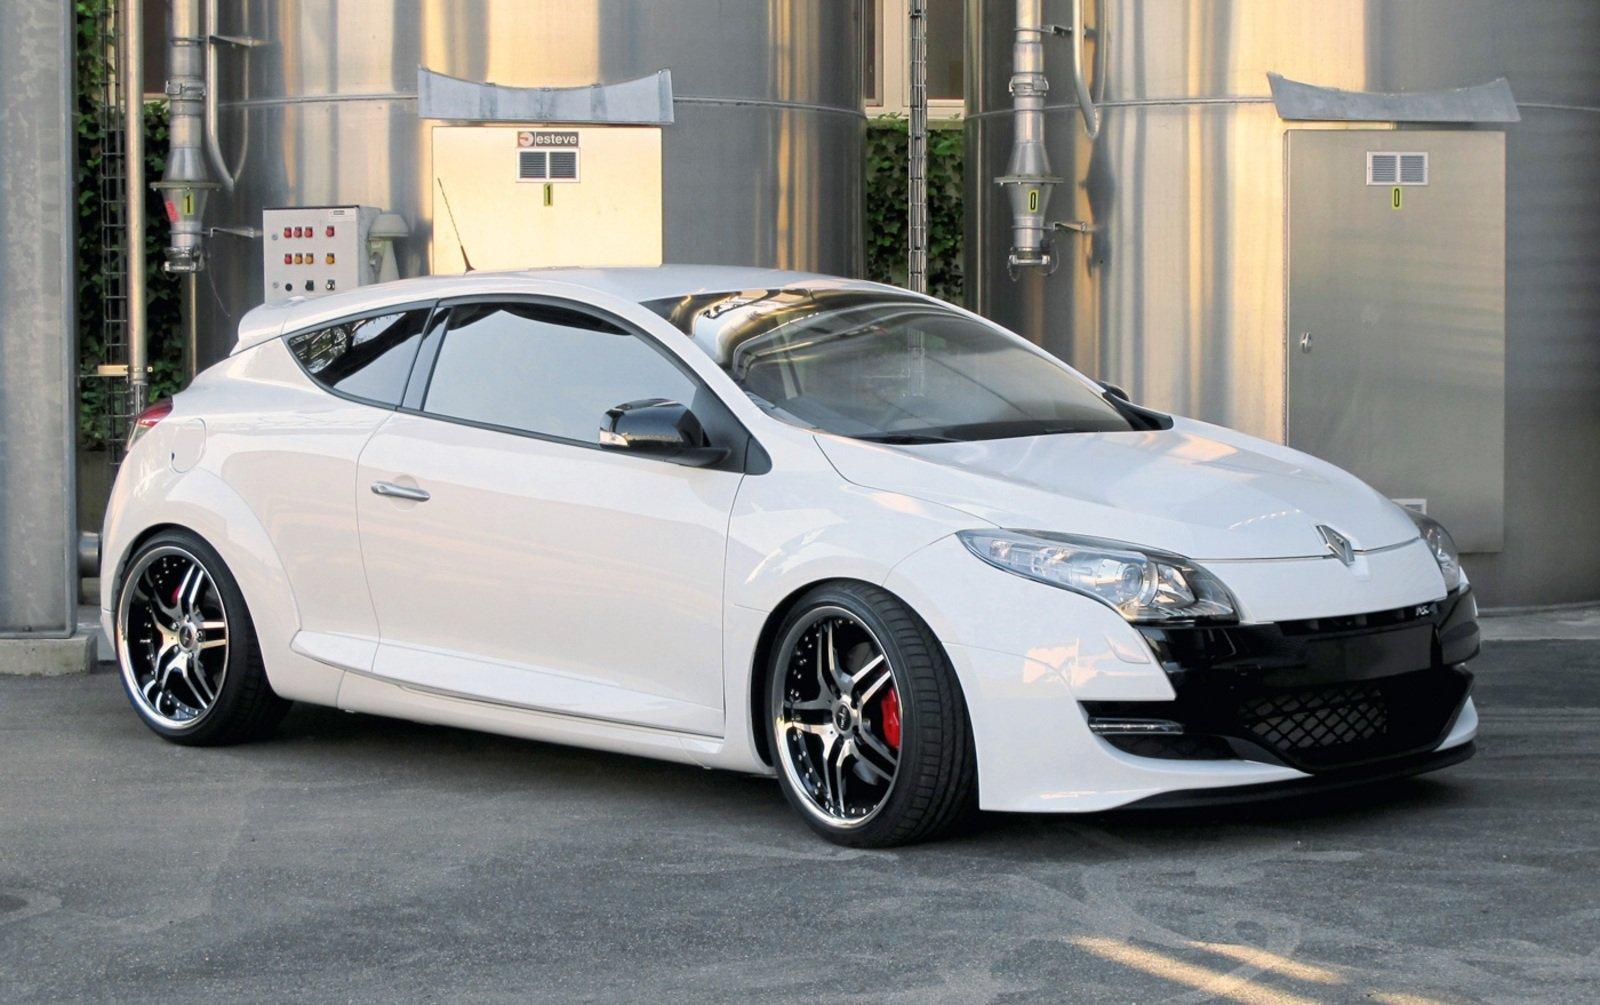 Renault Megane RS With Corniche Sports Wheels